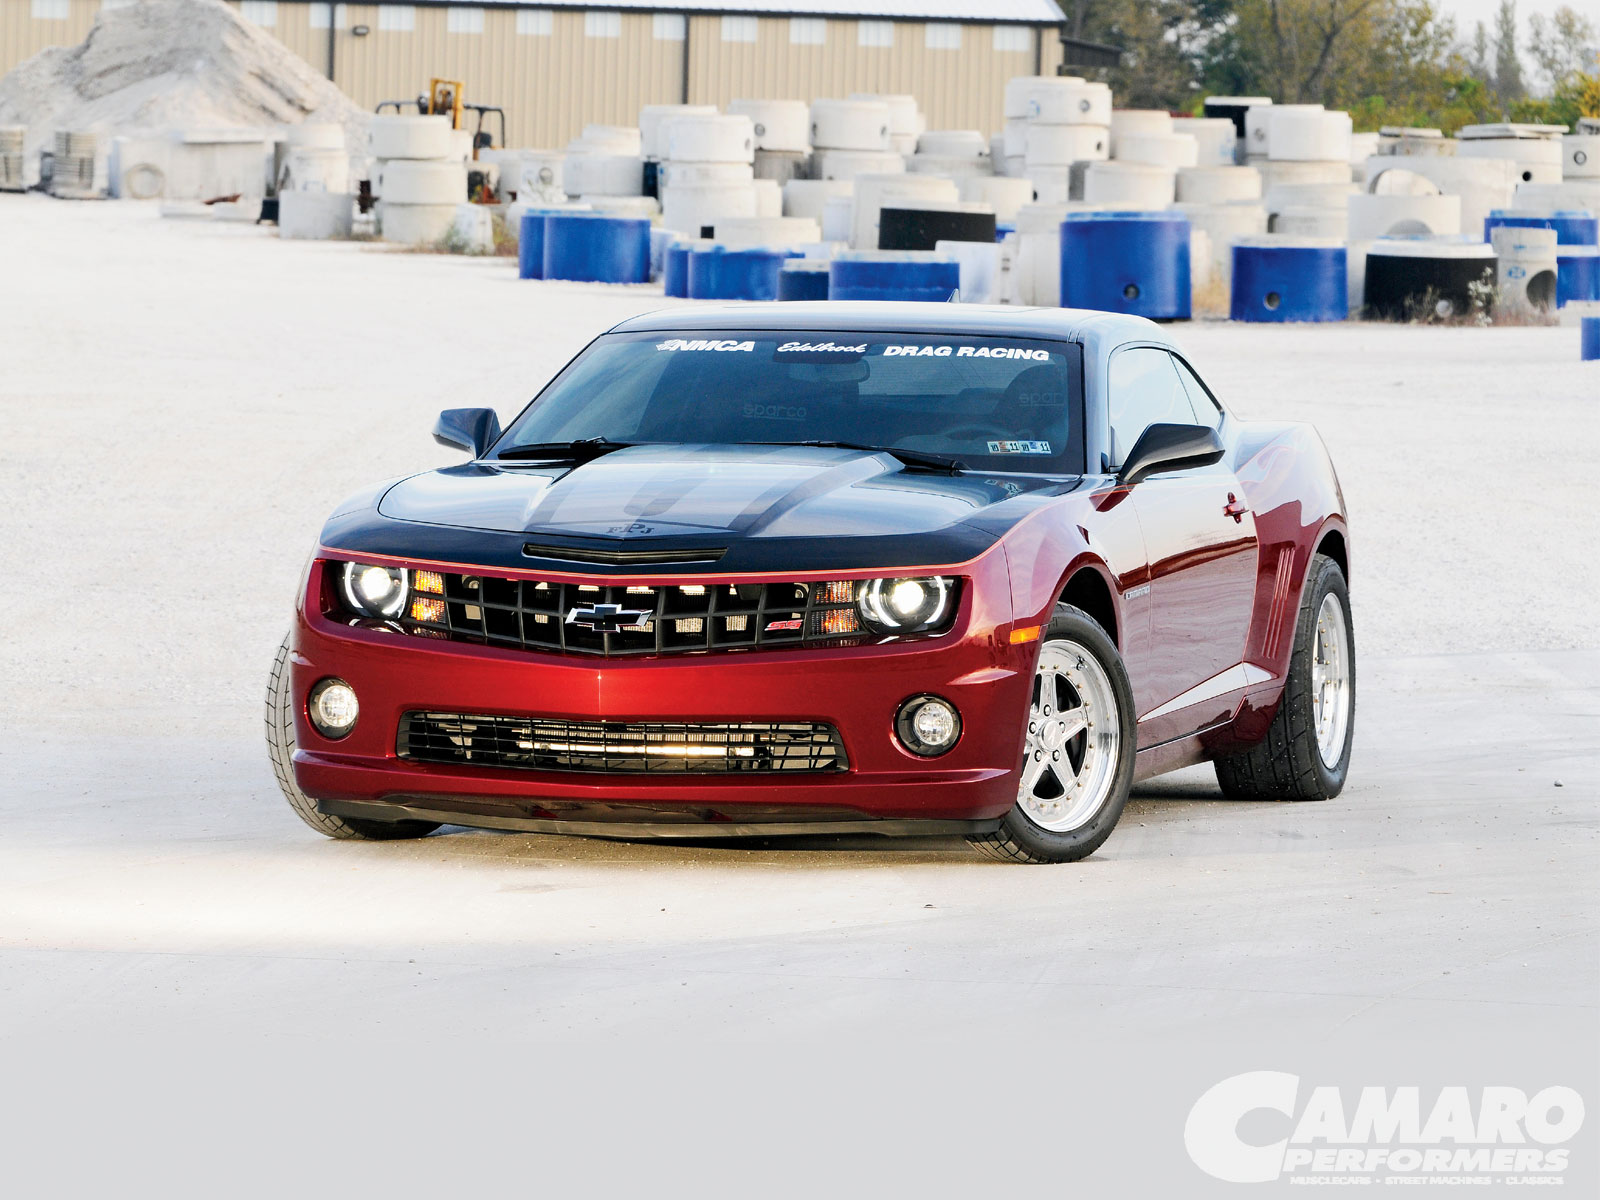 2010 Chevrolet Camaro - To The Nines